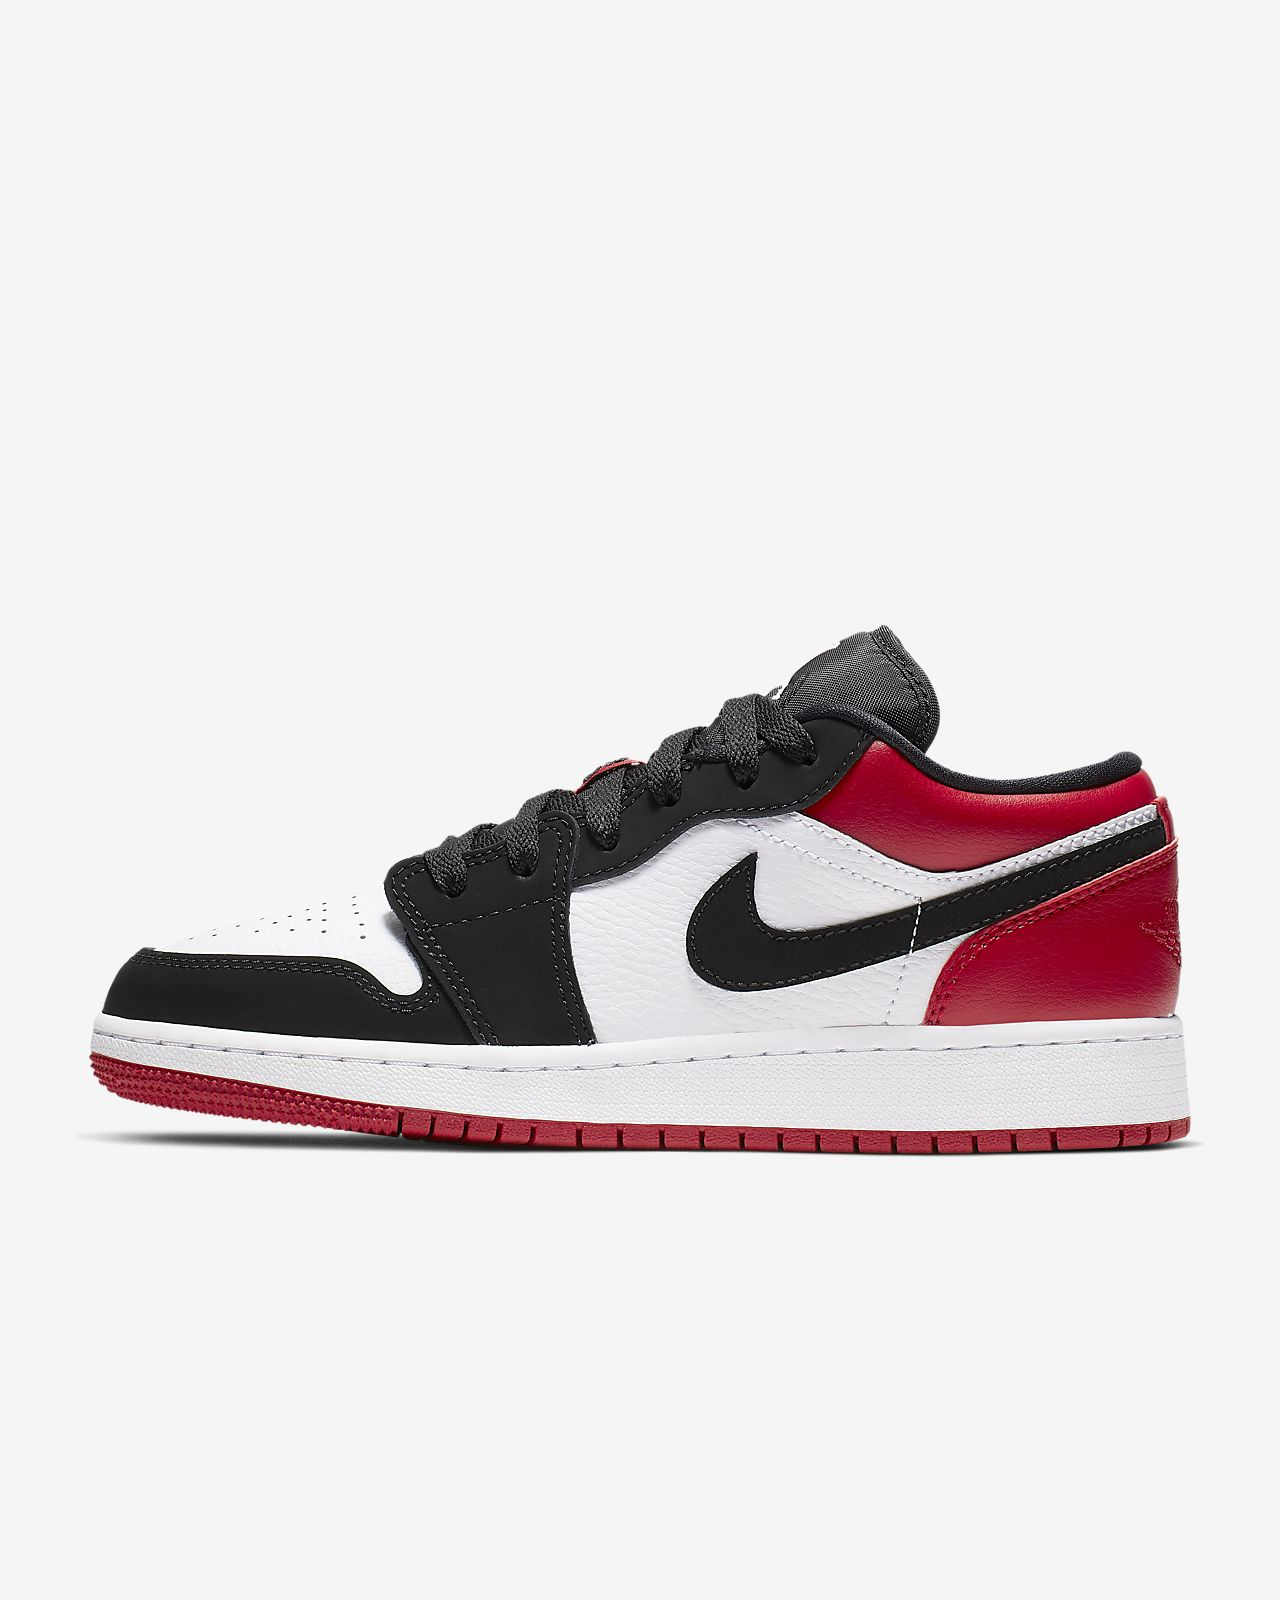 huge selection of 16e4c 75d87 Big Kids  Shoe. Air Jordan 1 Low